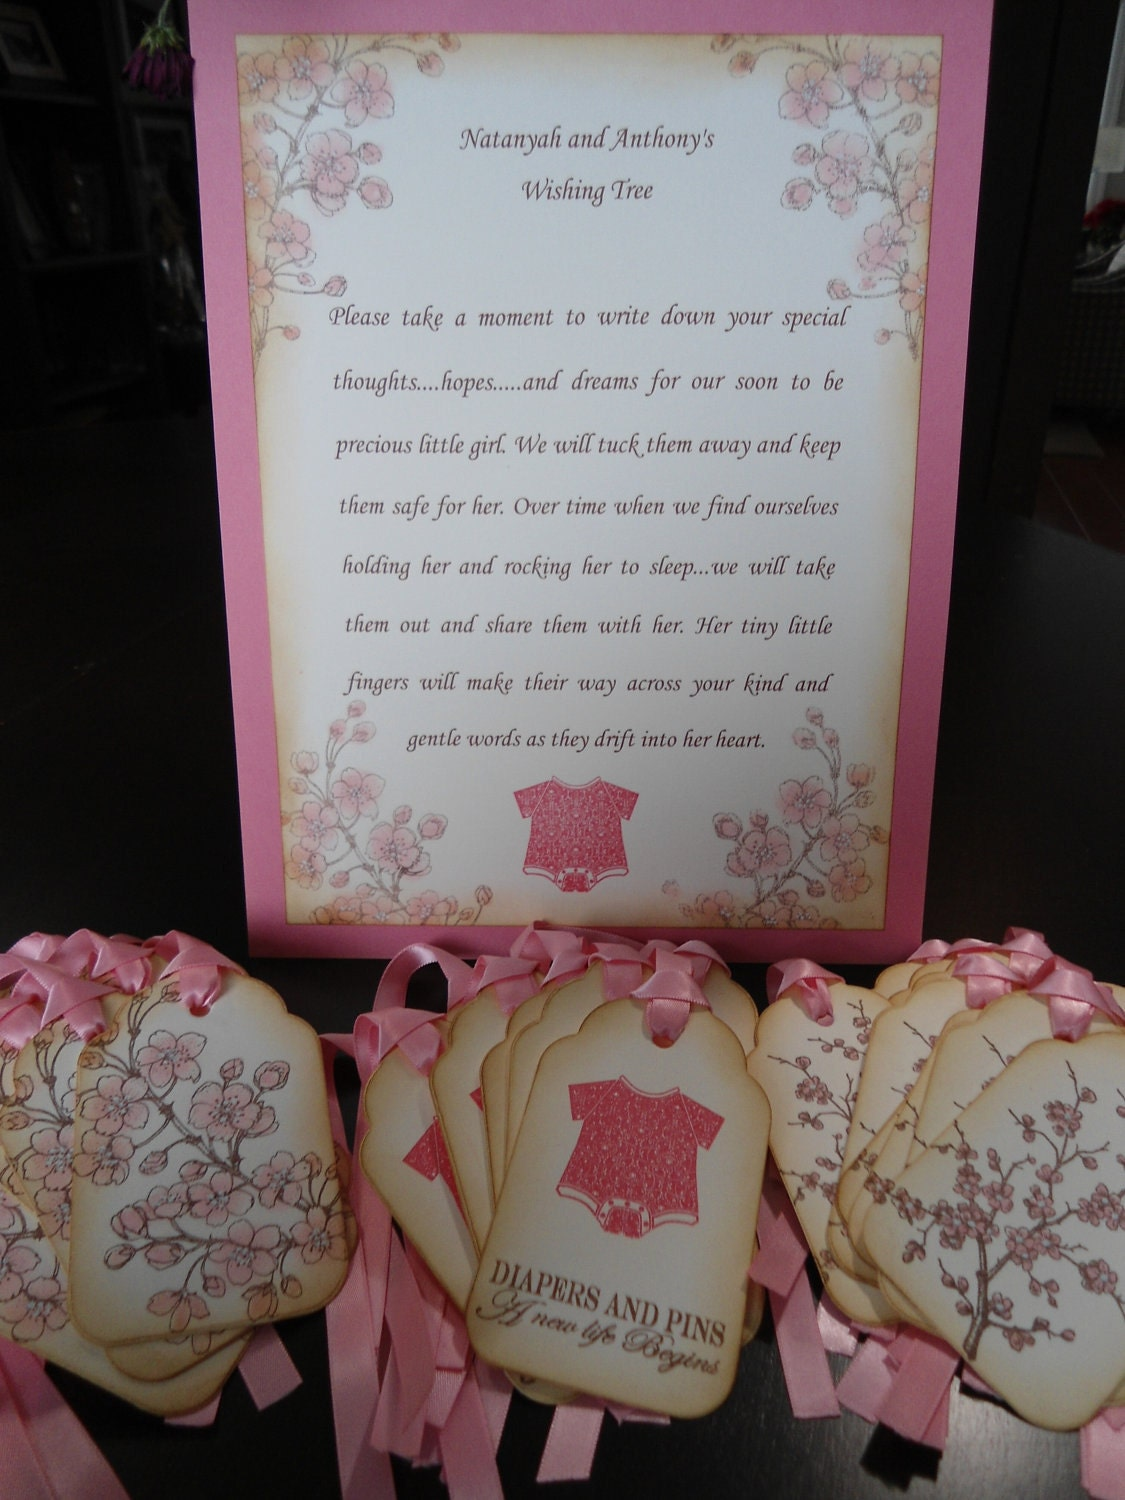 Baby Shower Wish Tree Poem http://www.etsy.com/listing/90483930/customizable-wish-tree-instruction-sheet